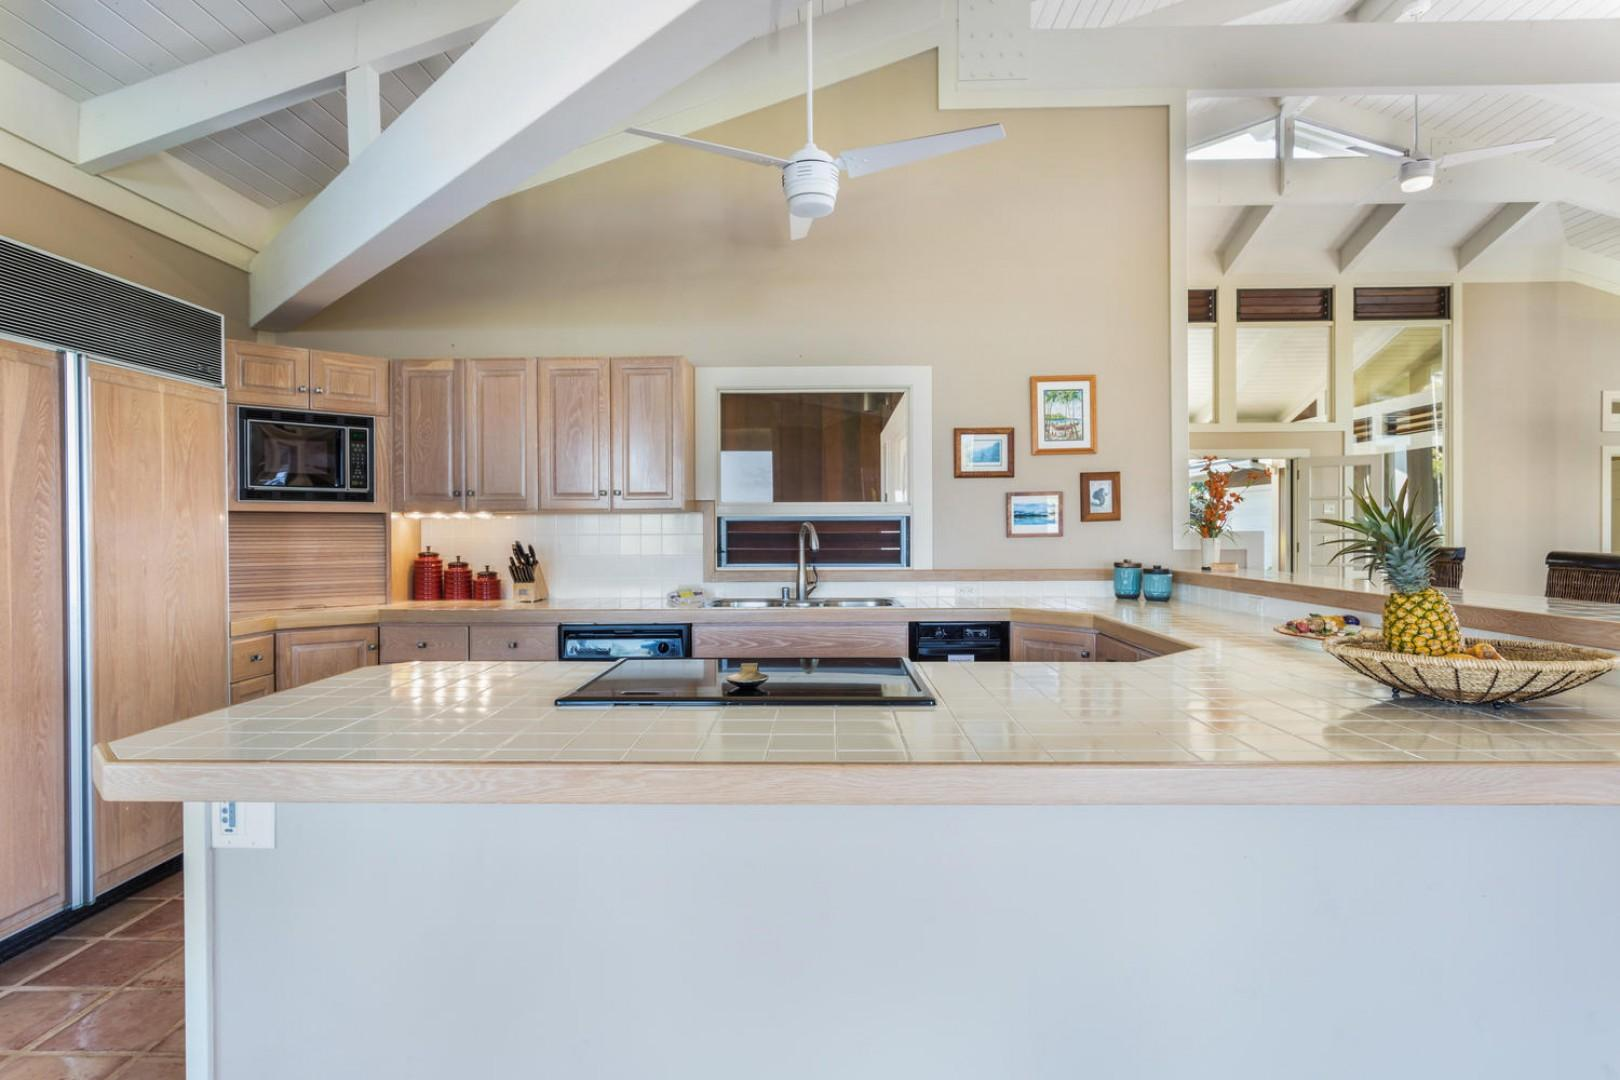 The large kitchen has tons of counter space.